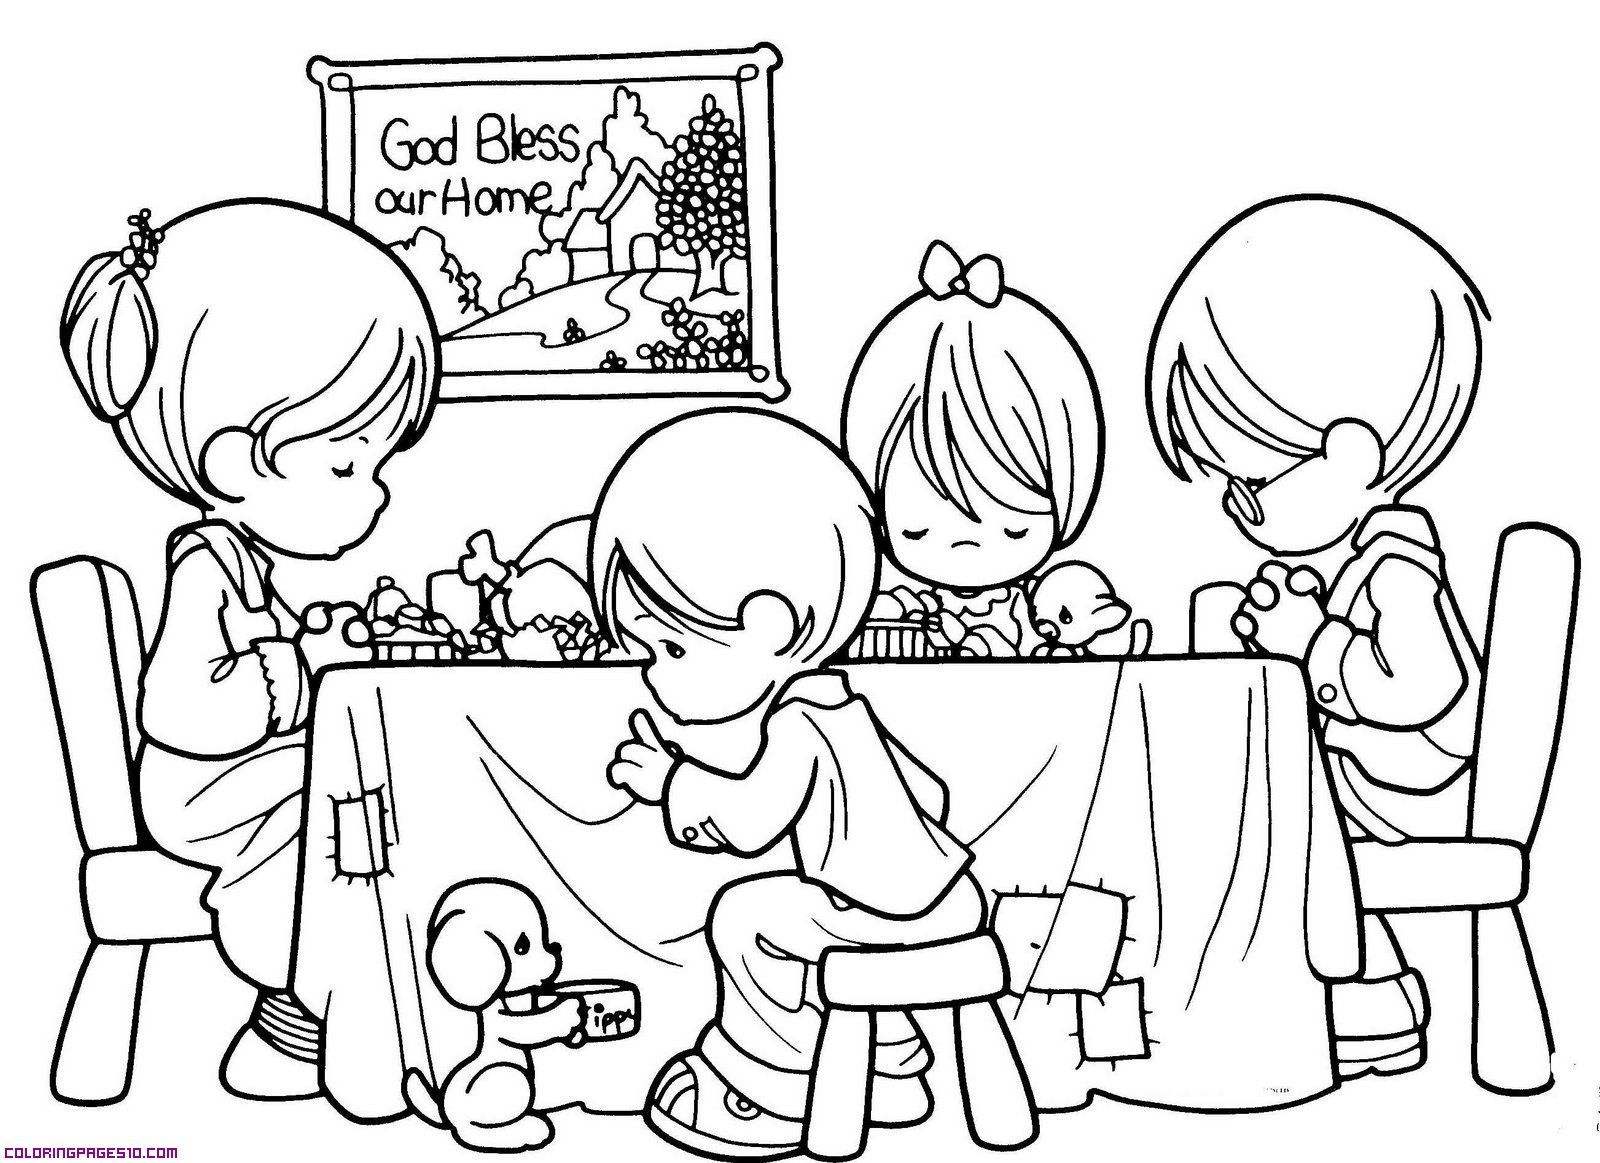 Free Printable Coloring Pages Of Praying Hands